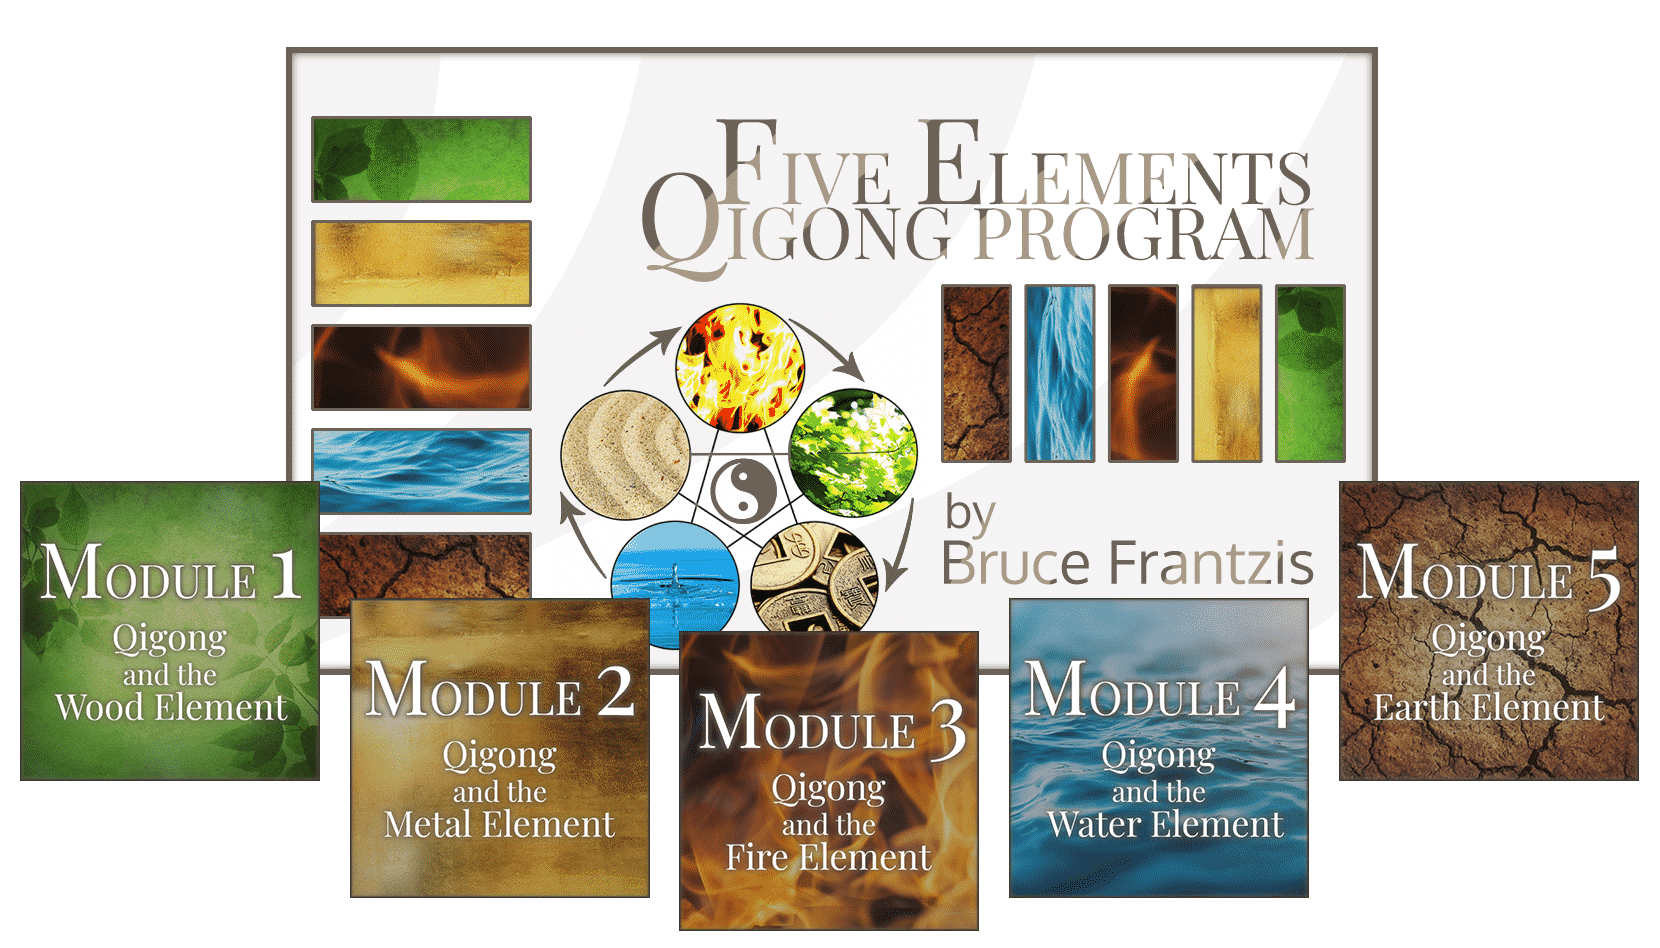 core five elements qigong program modules wood metal fire water earth